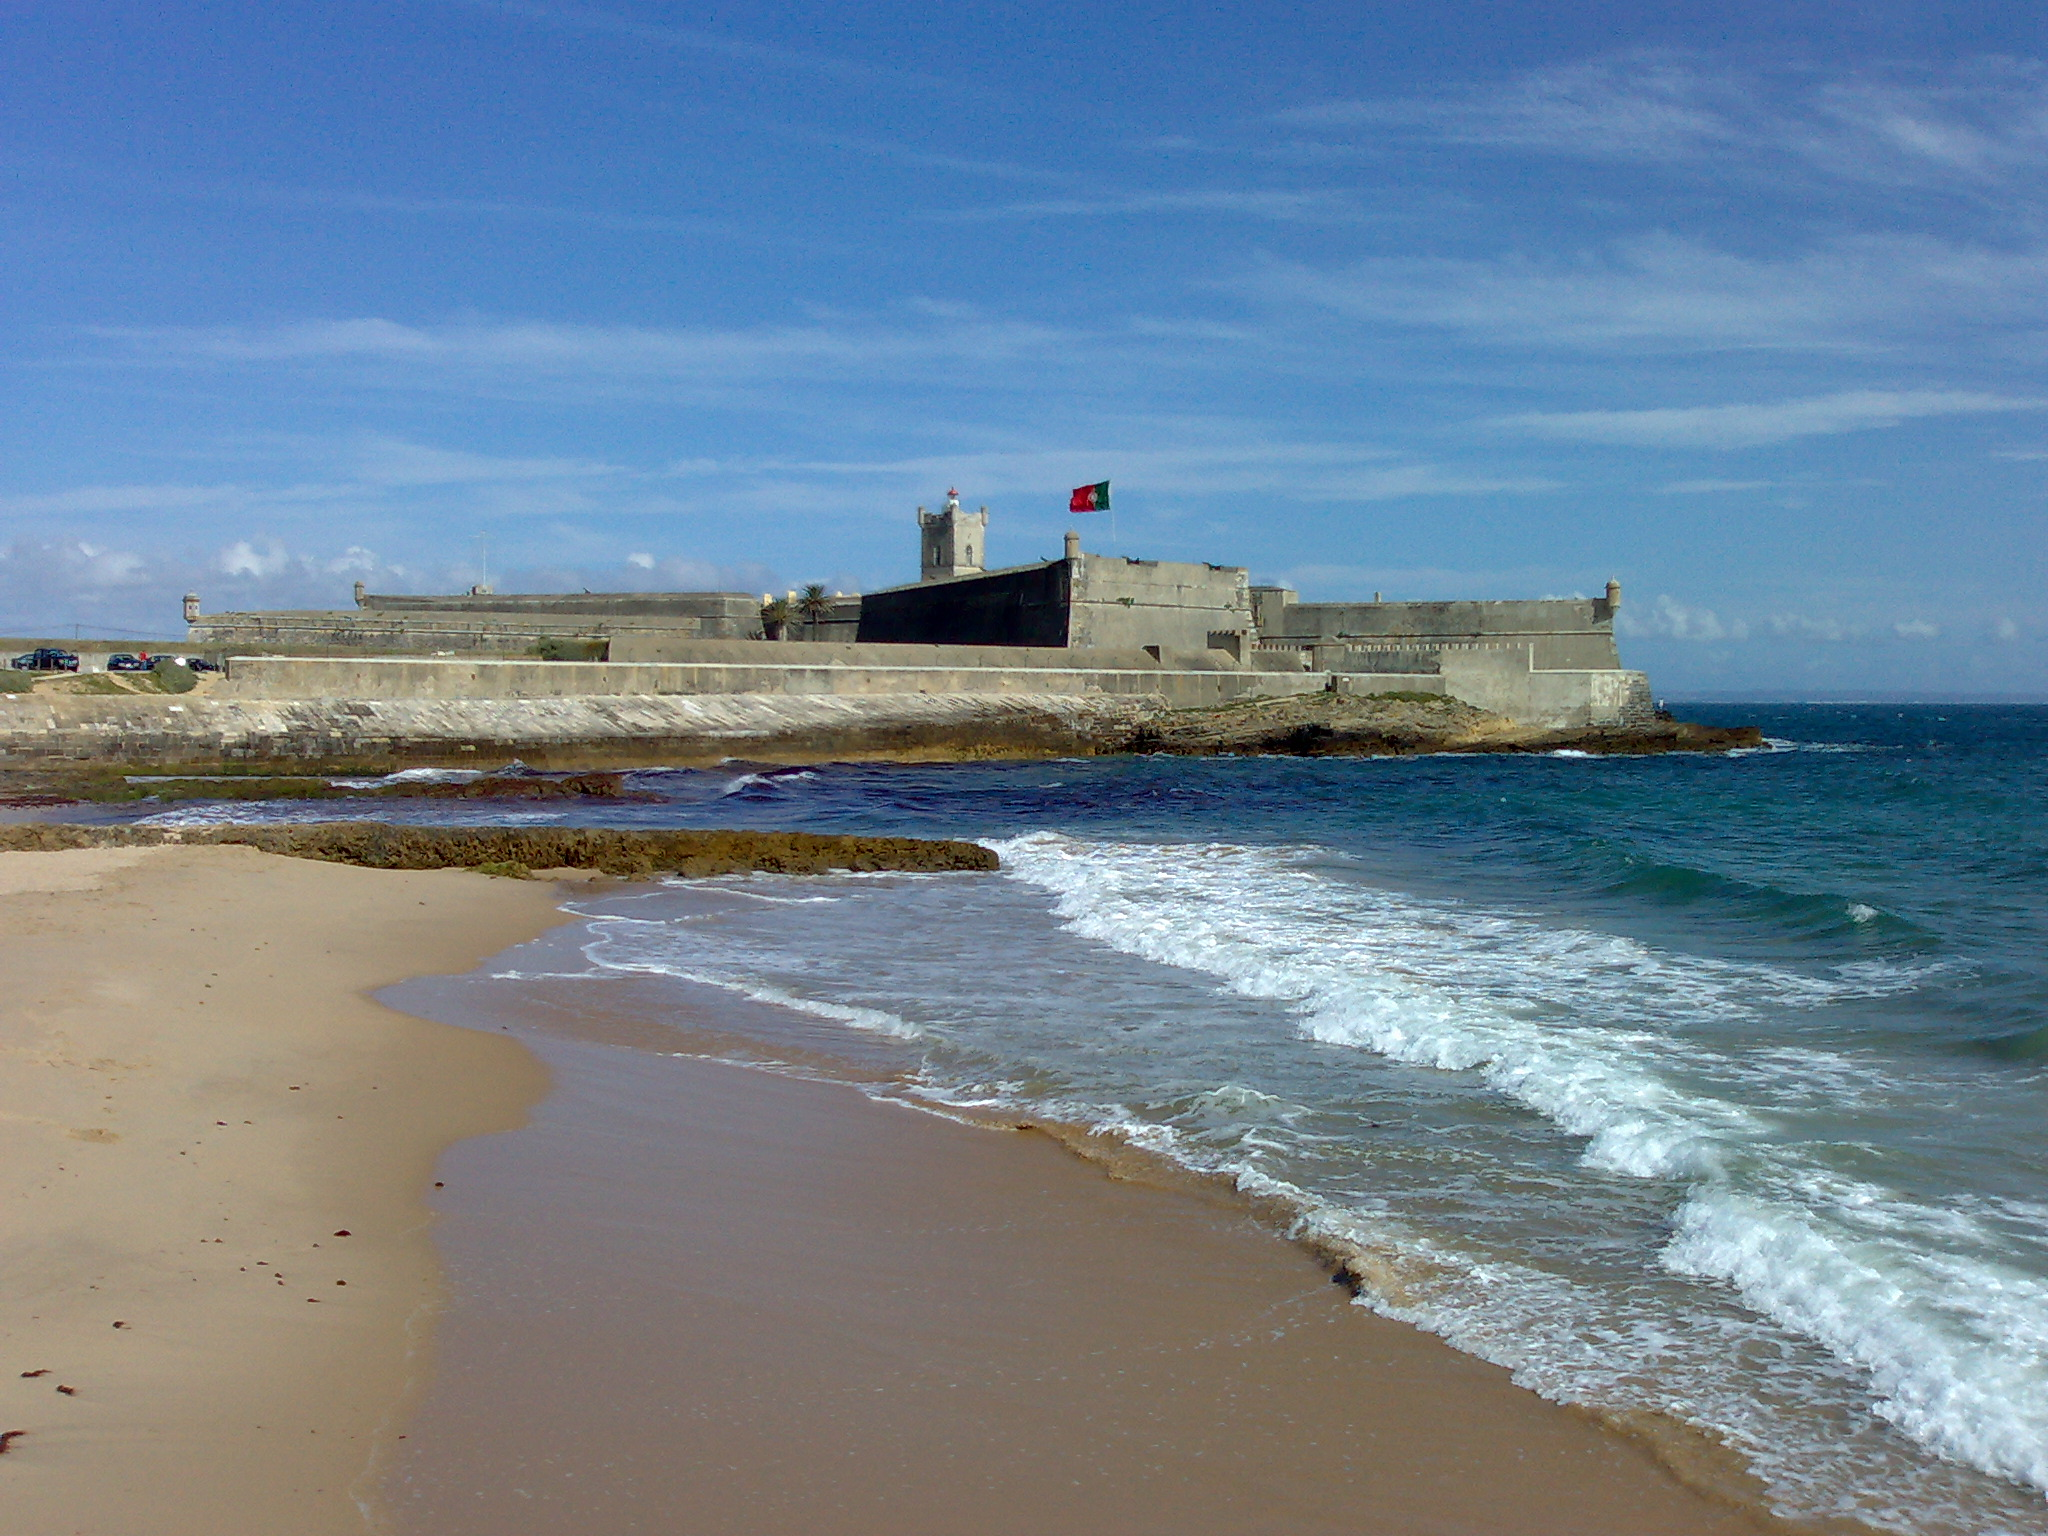 Sao Juliao da Barra